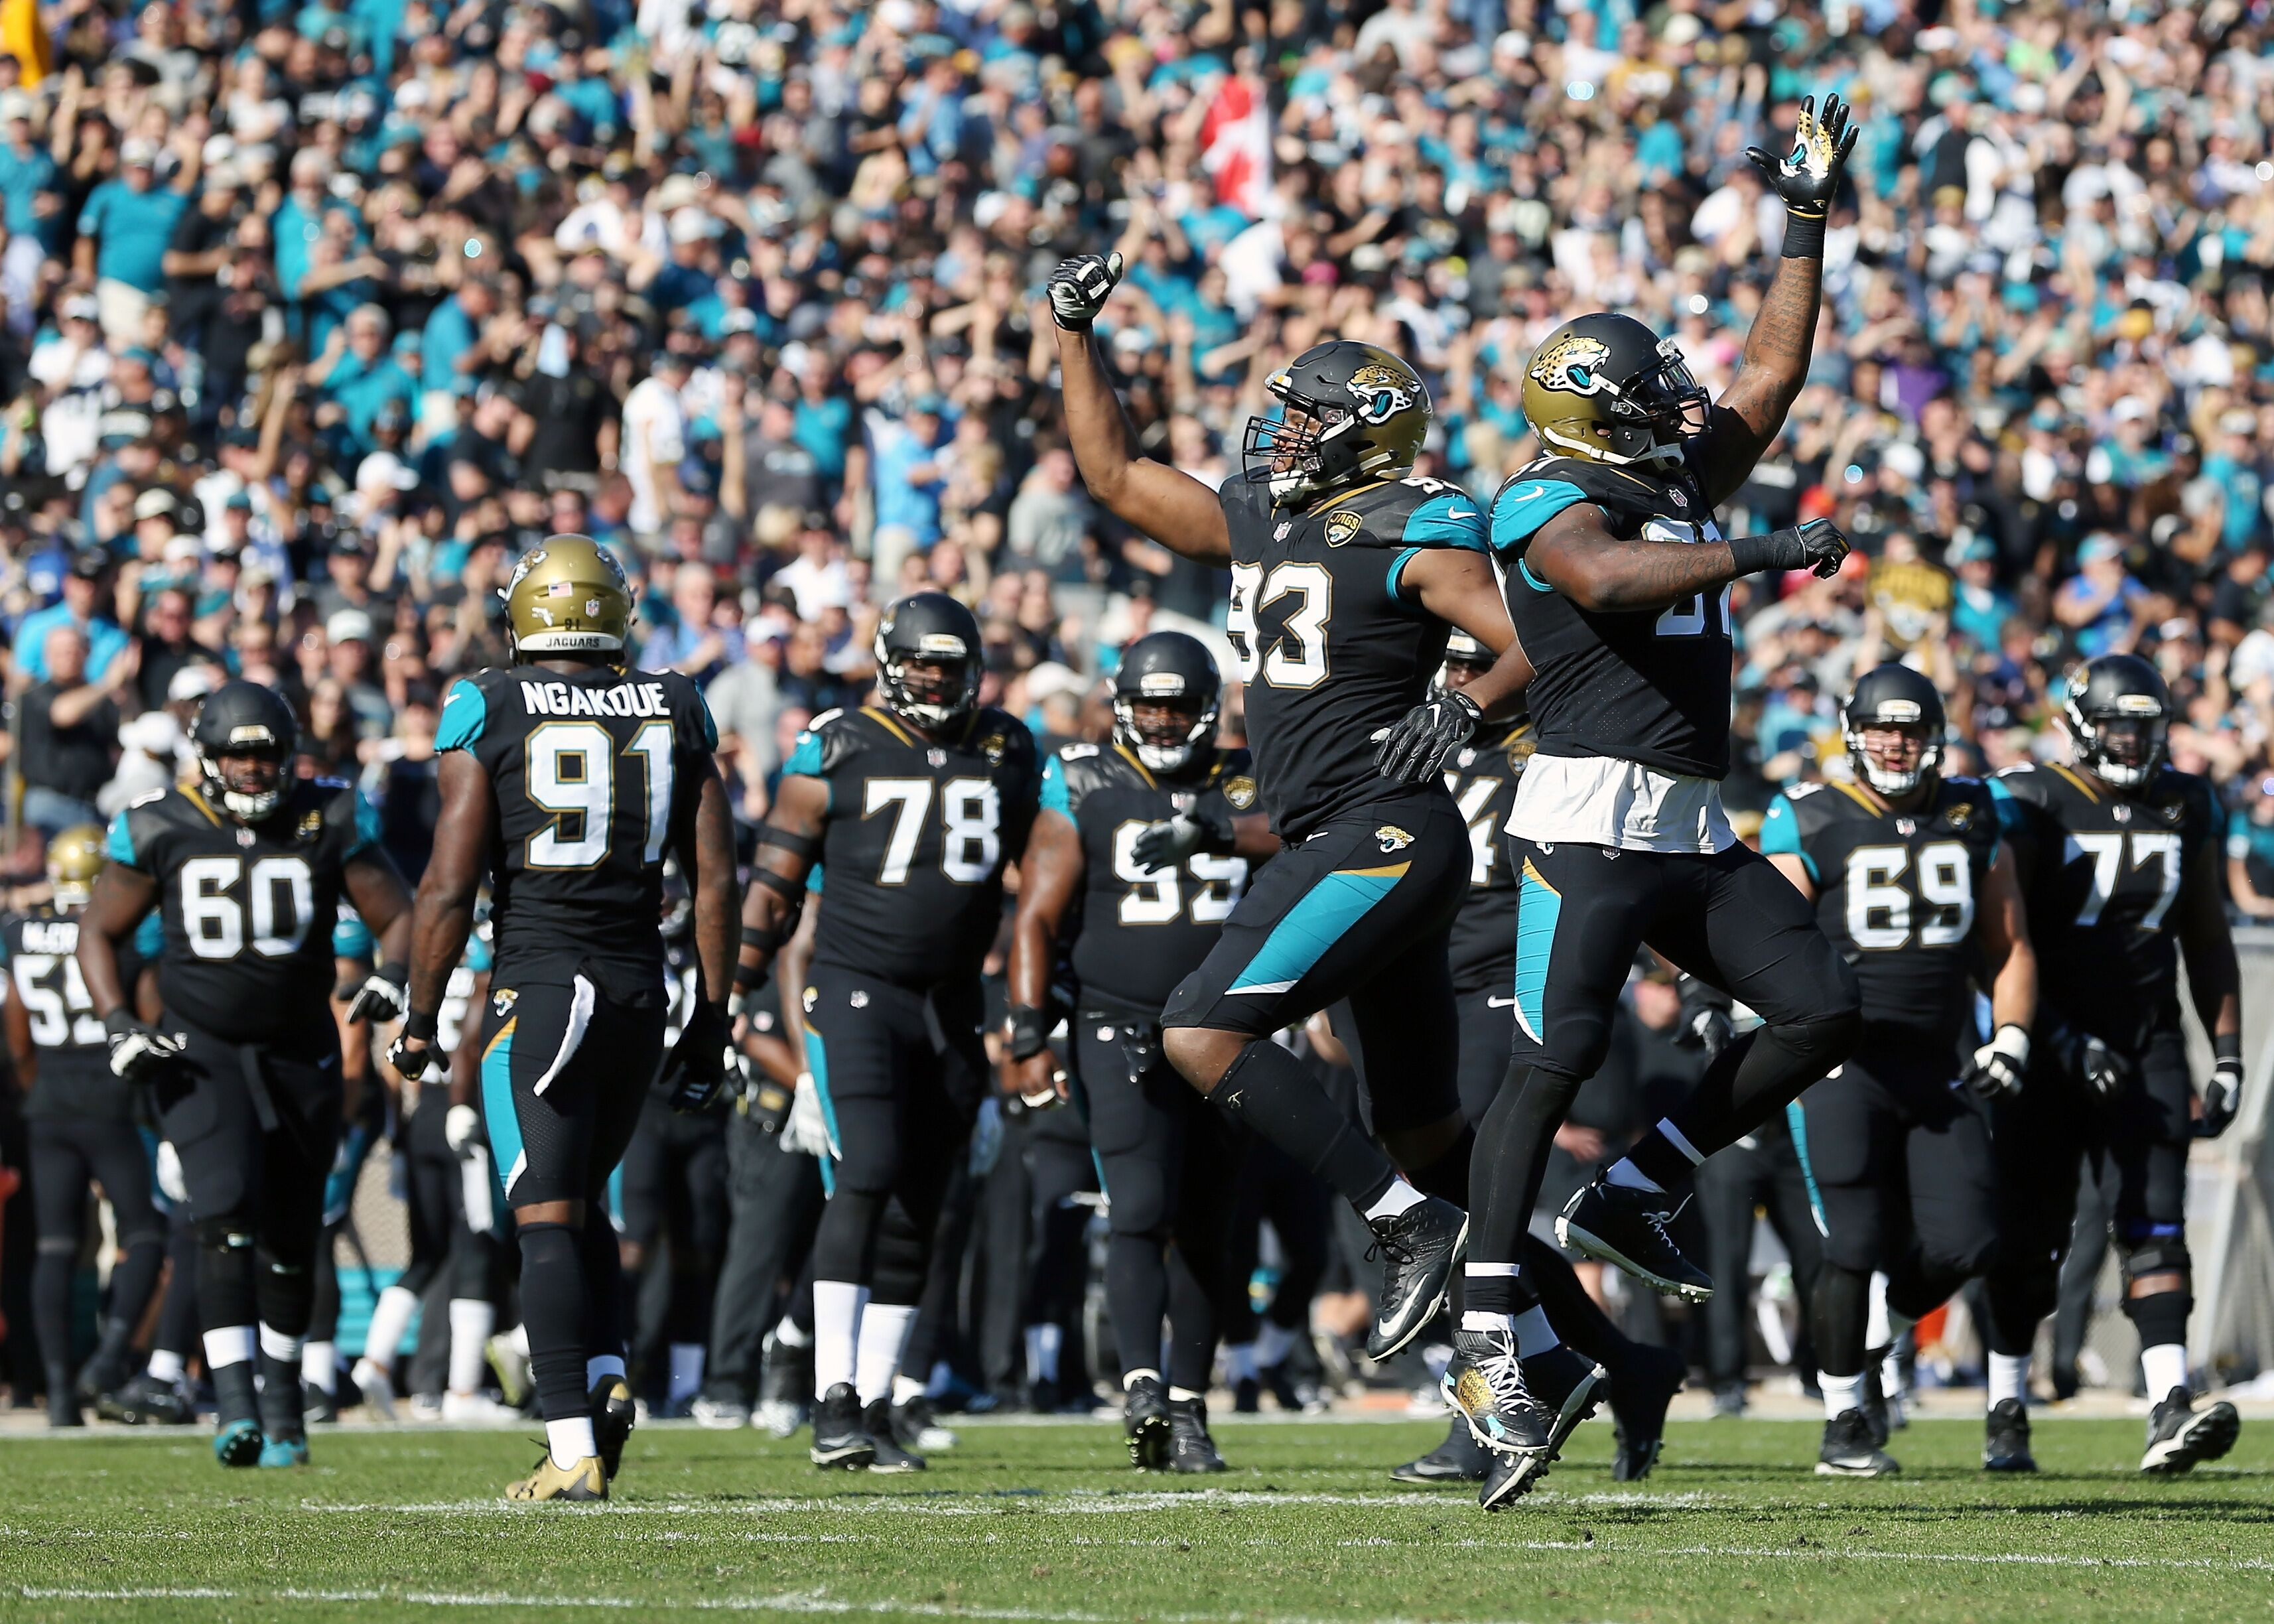 jacksonville jaguars have 8 of the top 100 players in the nfl